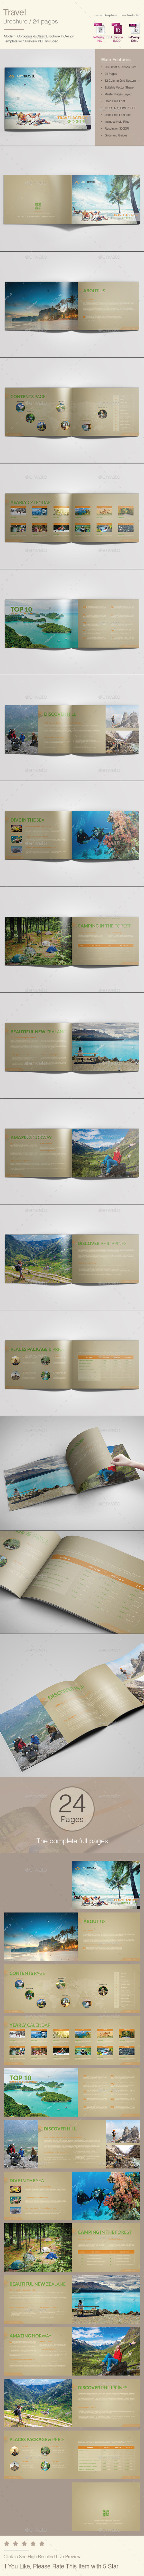 Travel Brochure - Corporate Brochures